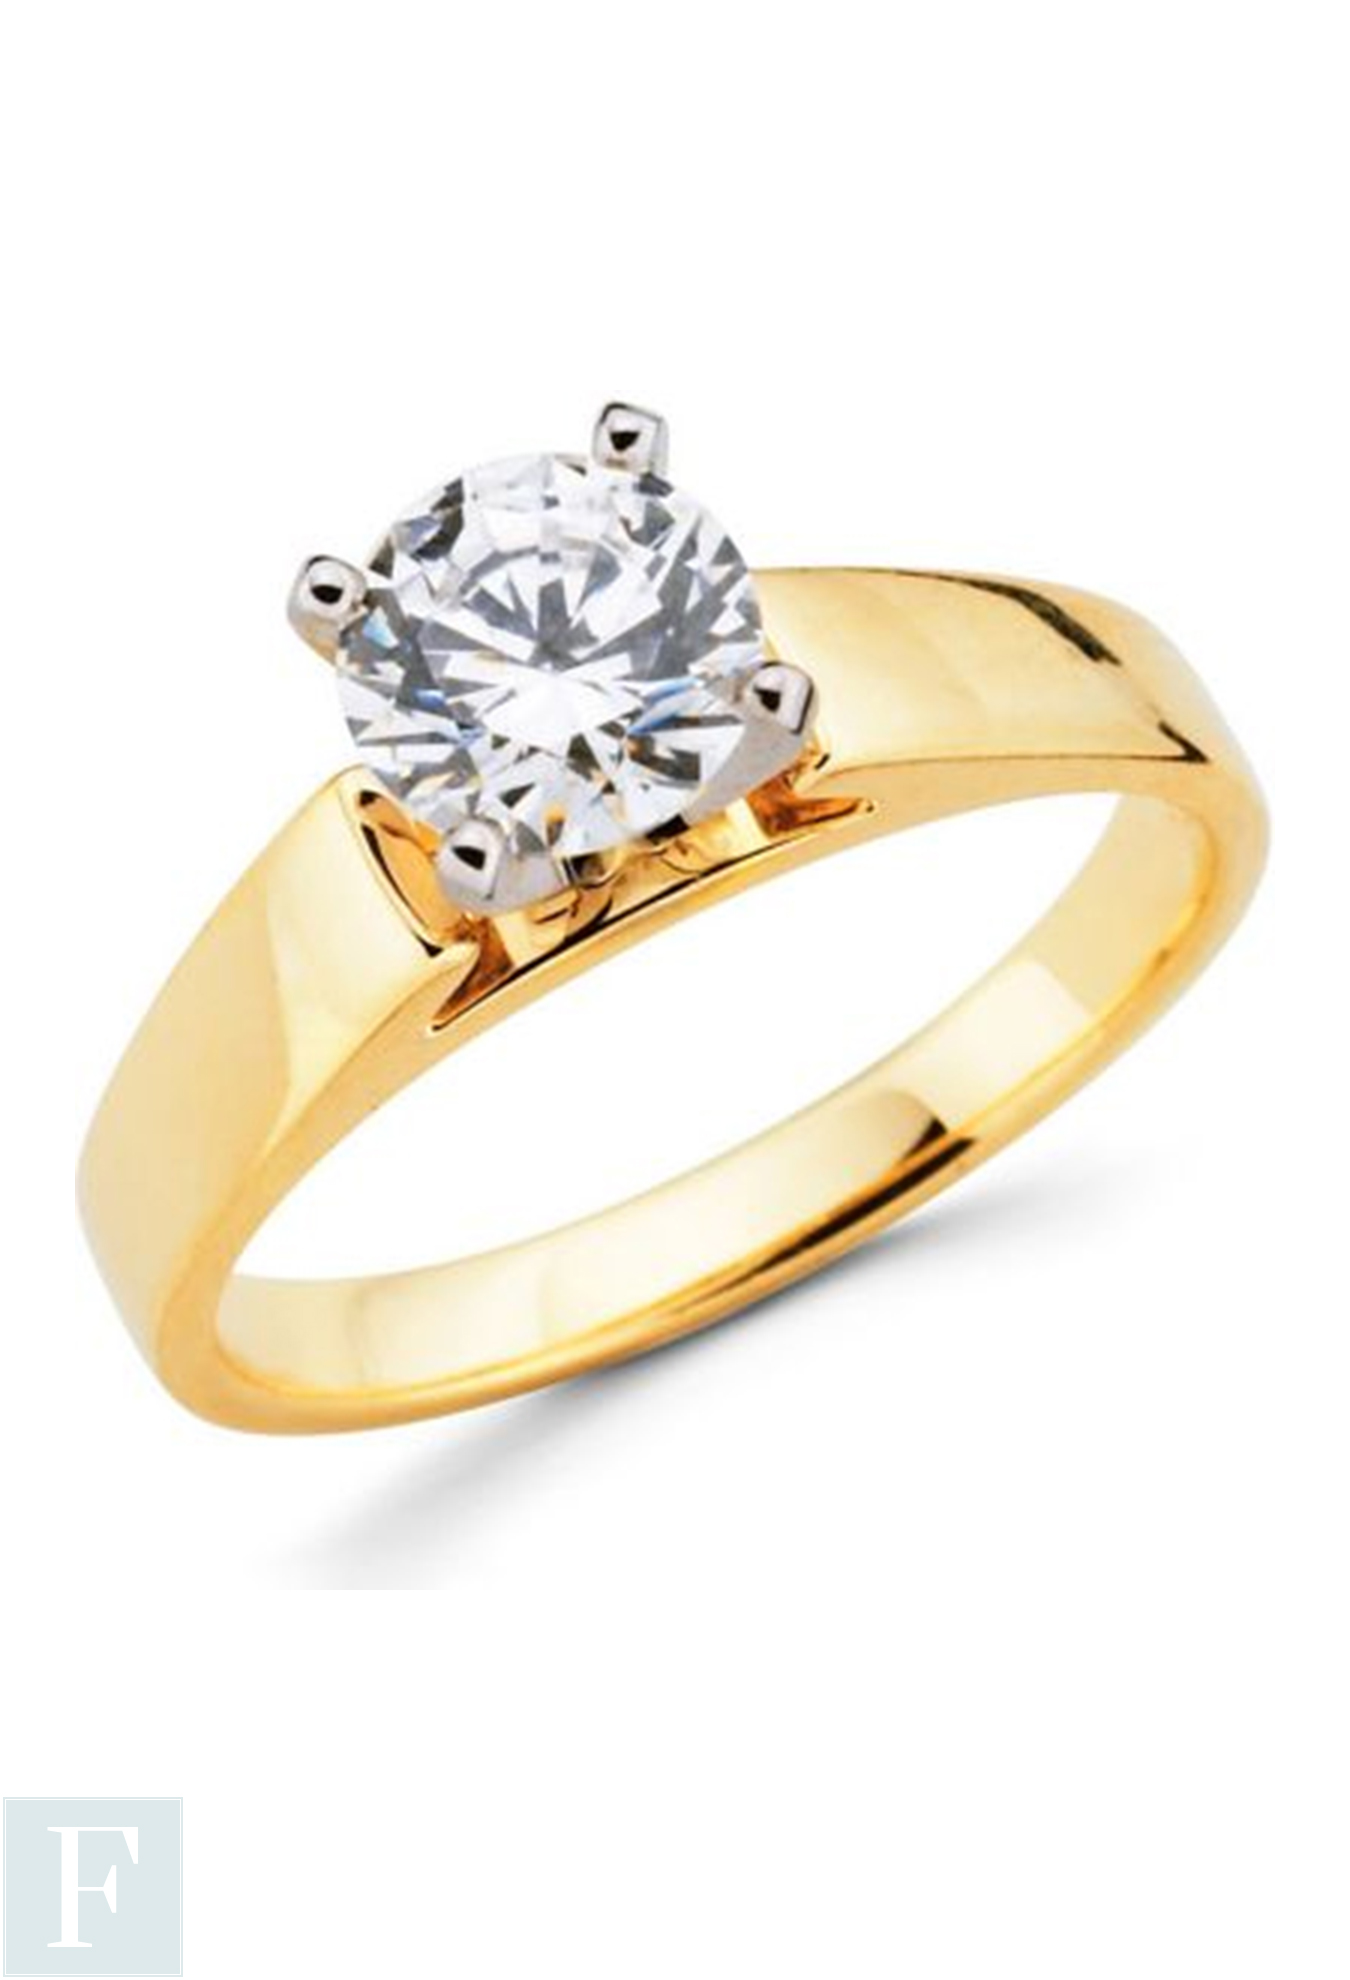 ROUND CUT 4mm Wide Band Diamond Solitaire Engagement Ring 14K GOLD